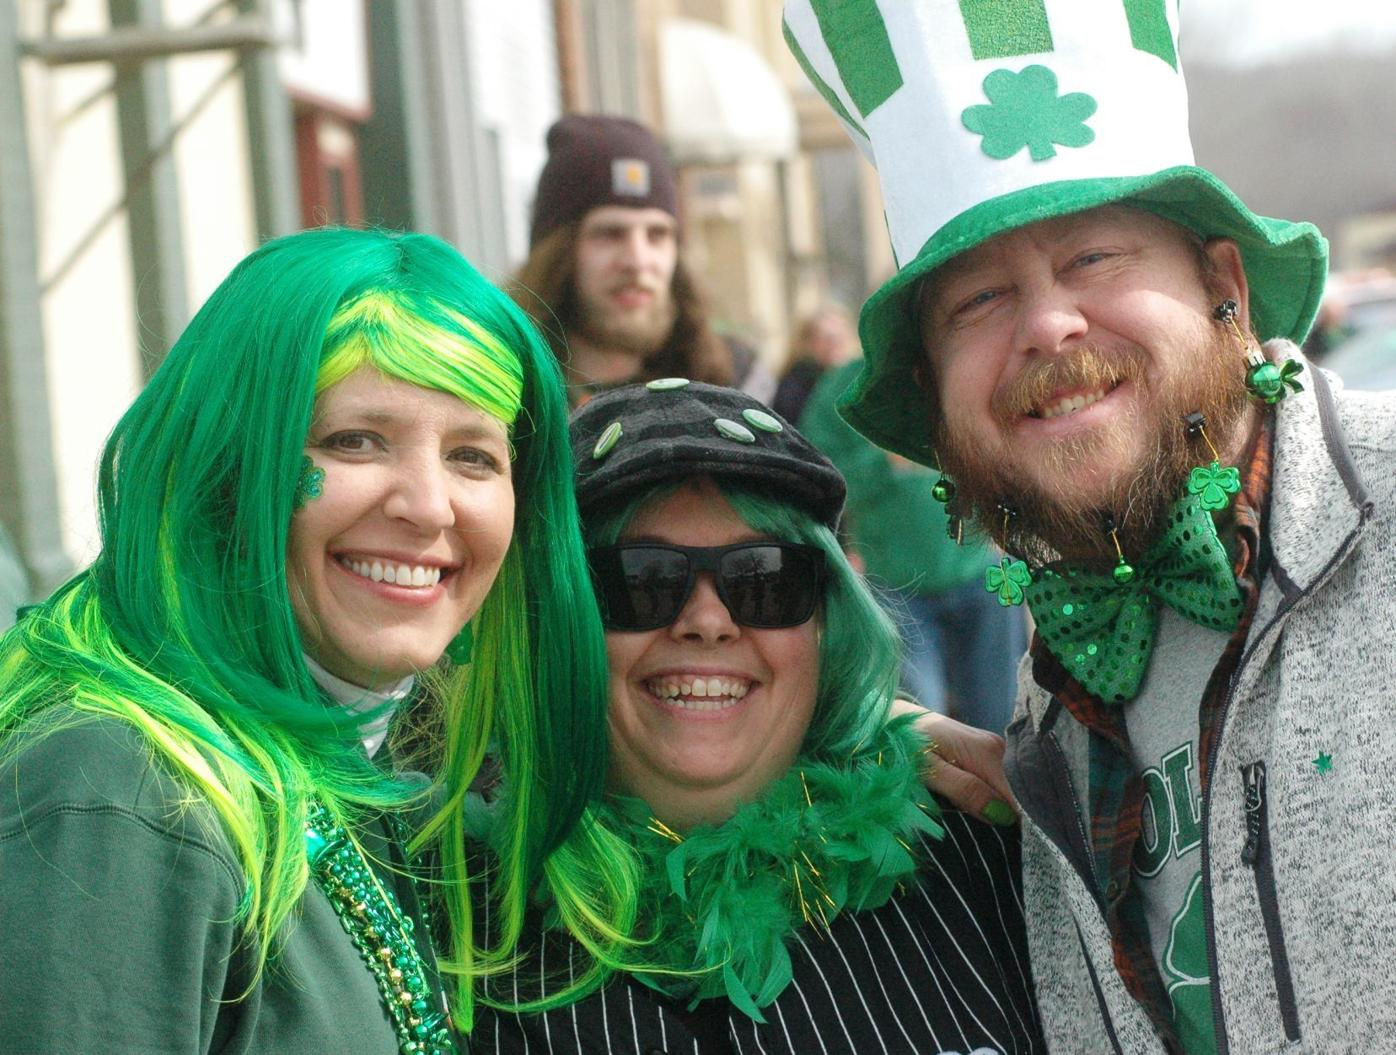 St. Peter St. Patrick's Day 2019